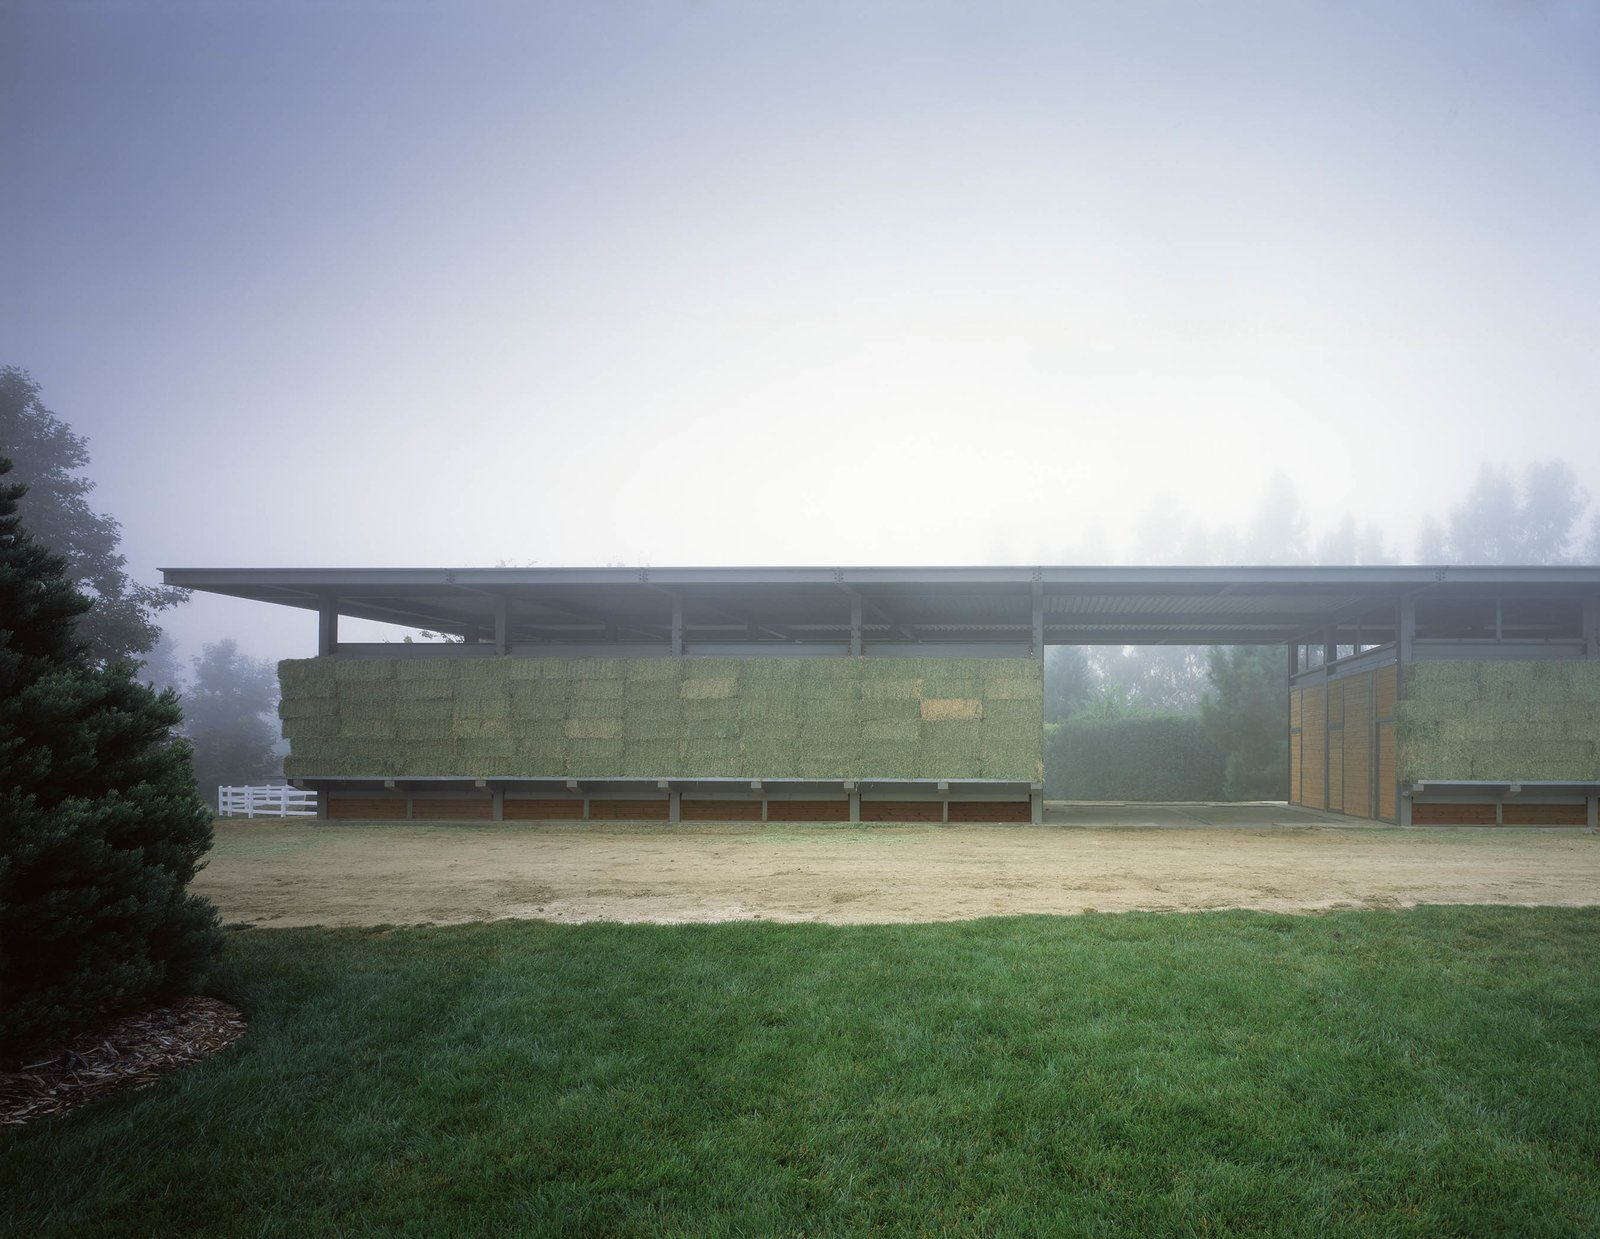 The concept is based on the ever-changing color and positioning of the hay as cladding on the barn. When hay is stacked along the outer storage shelves in the winter, it is green; as the season unfolds, the hay turns yellow, and the caretaker removes it from the shelves as it is used for feed.  Somis Hay Barn by Studio Pali Fekete architects